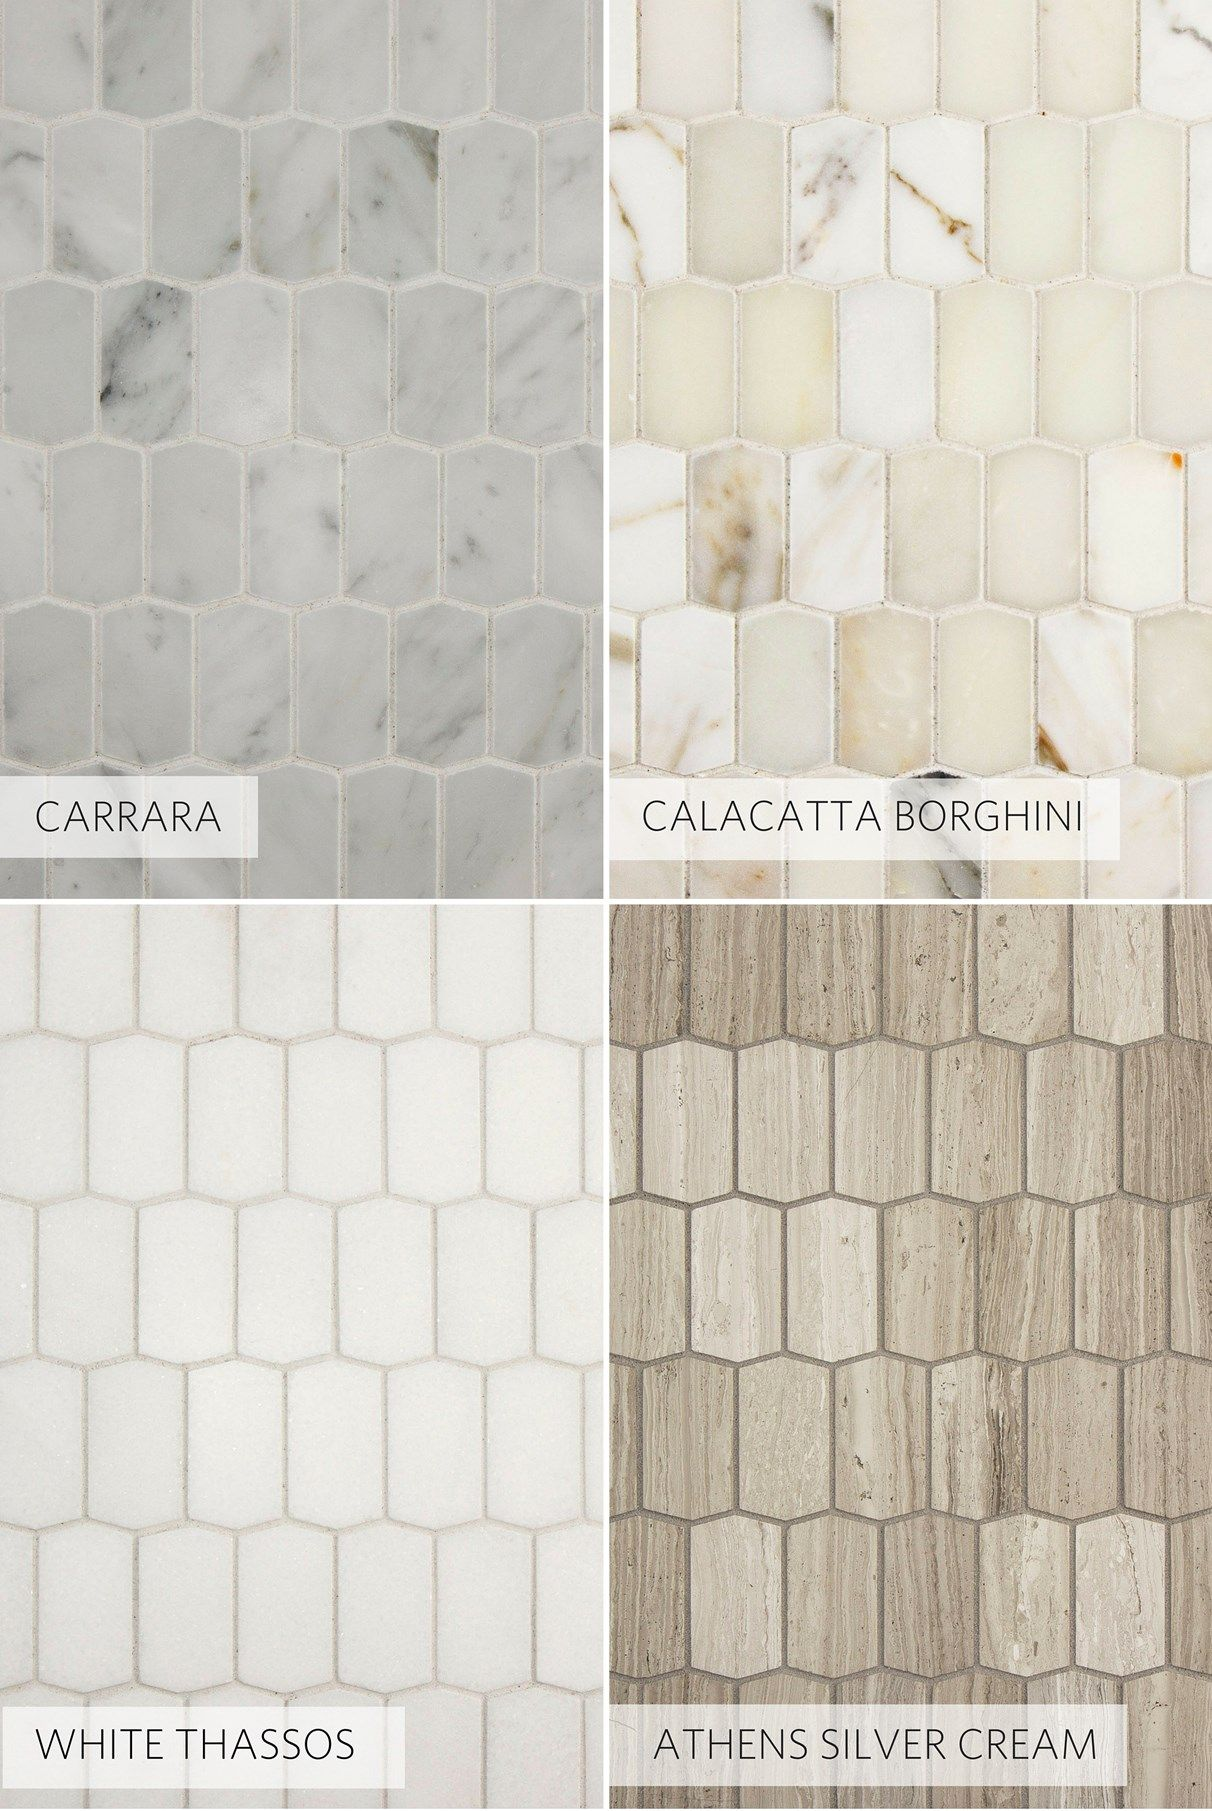 New hive mosaics, penny rounds, price-friendly porcelain and more ...